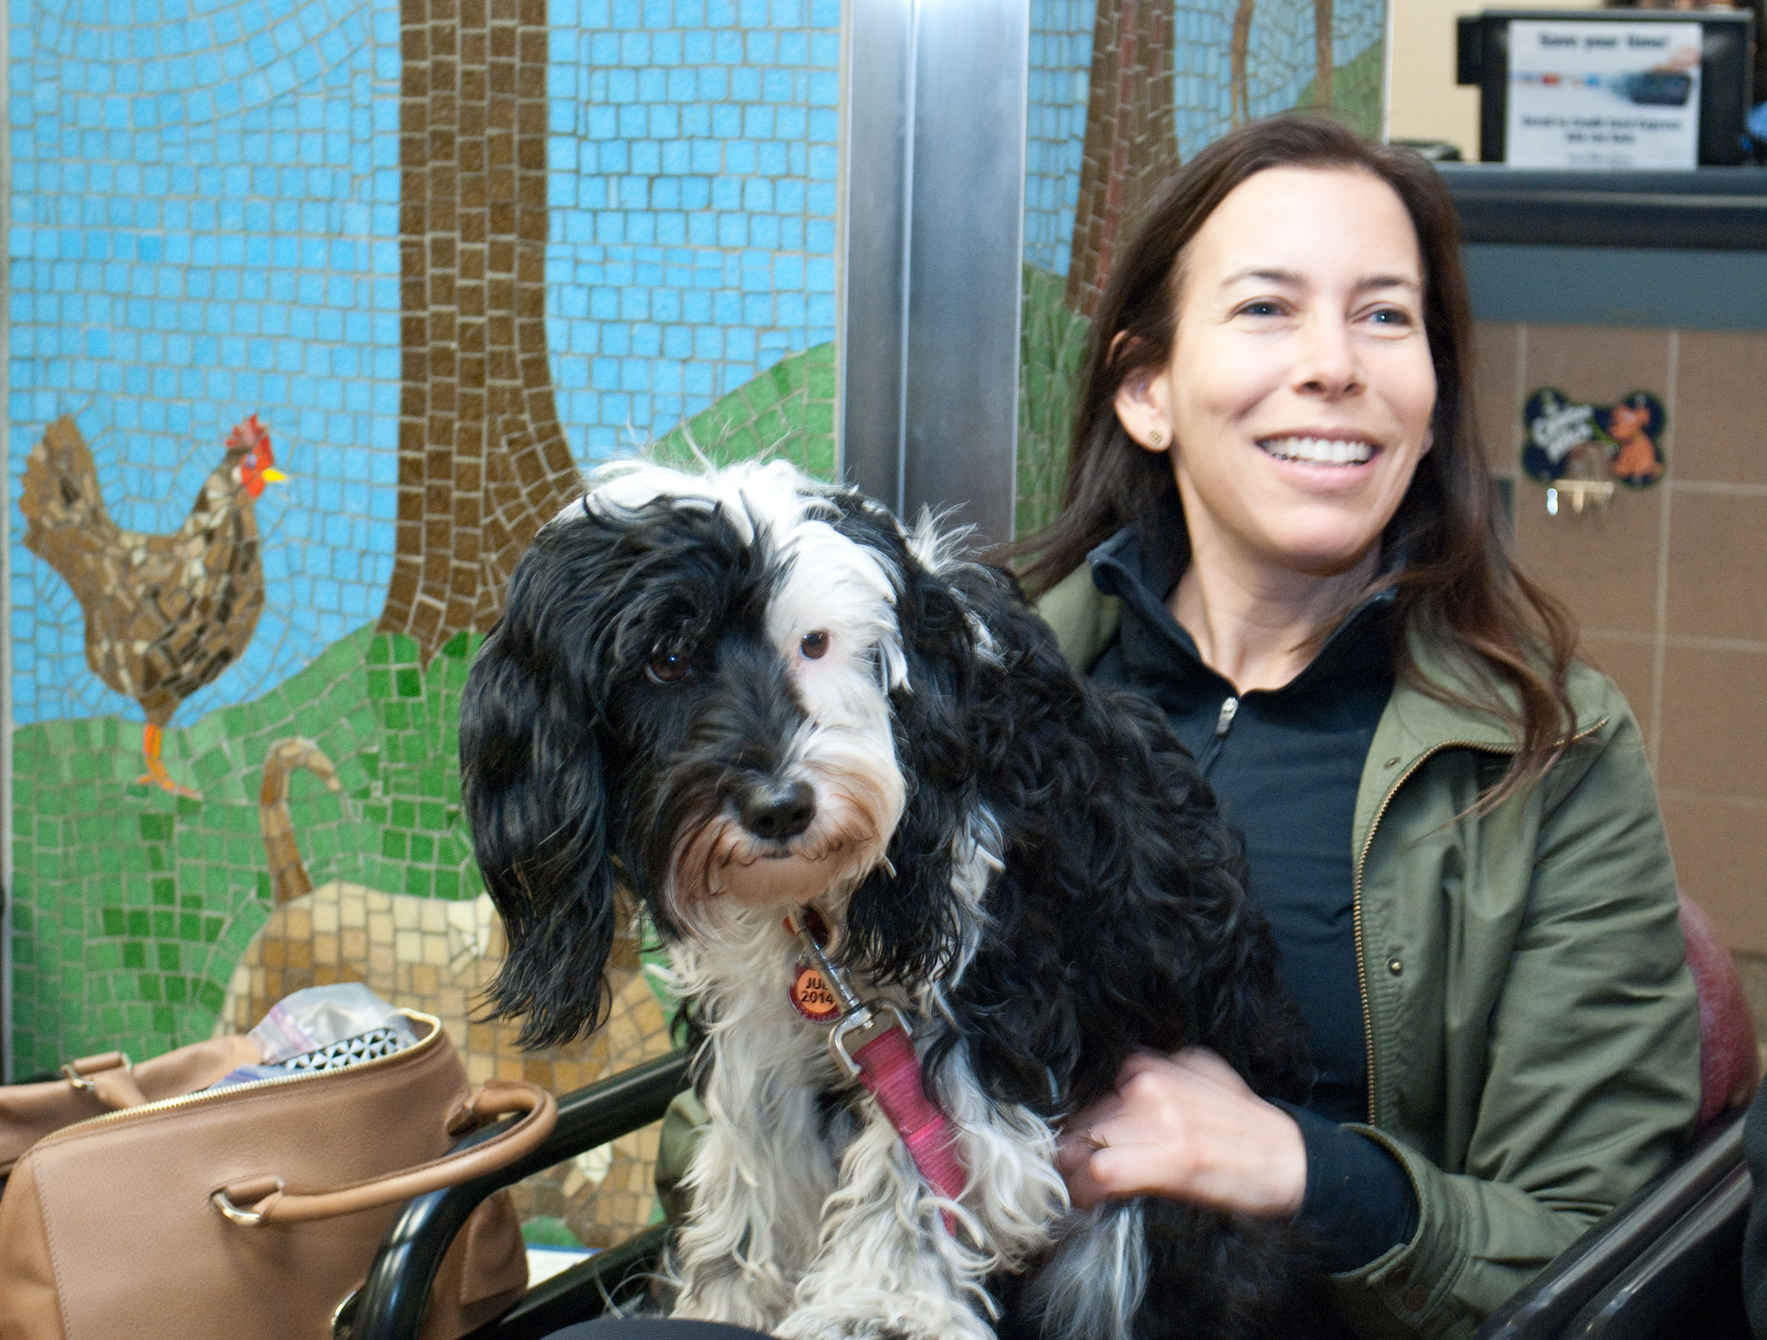 Help empower pet owners through education image